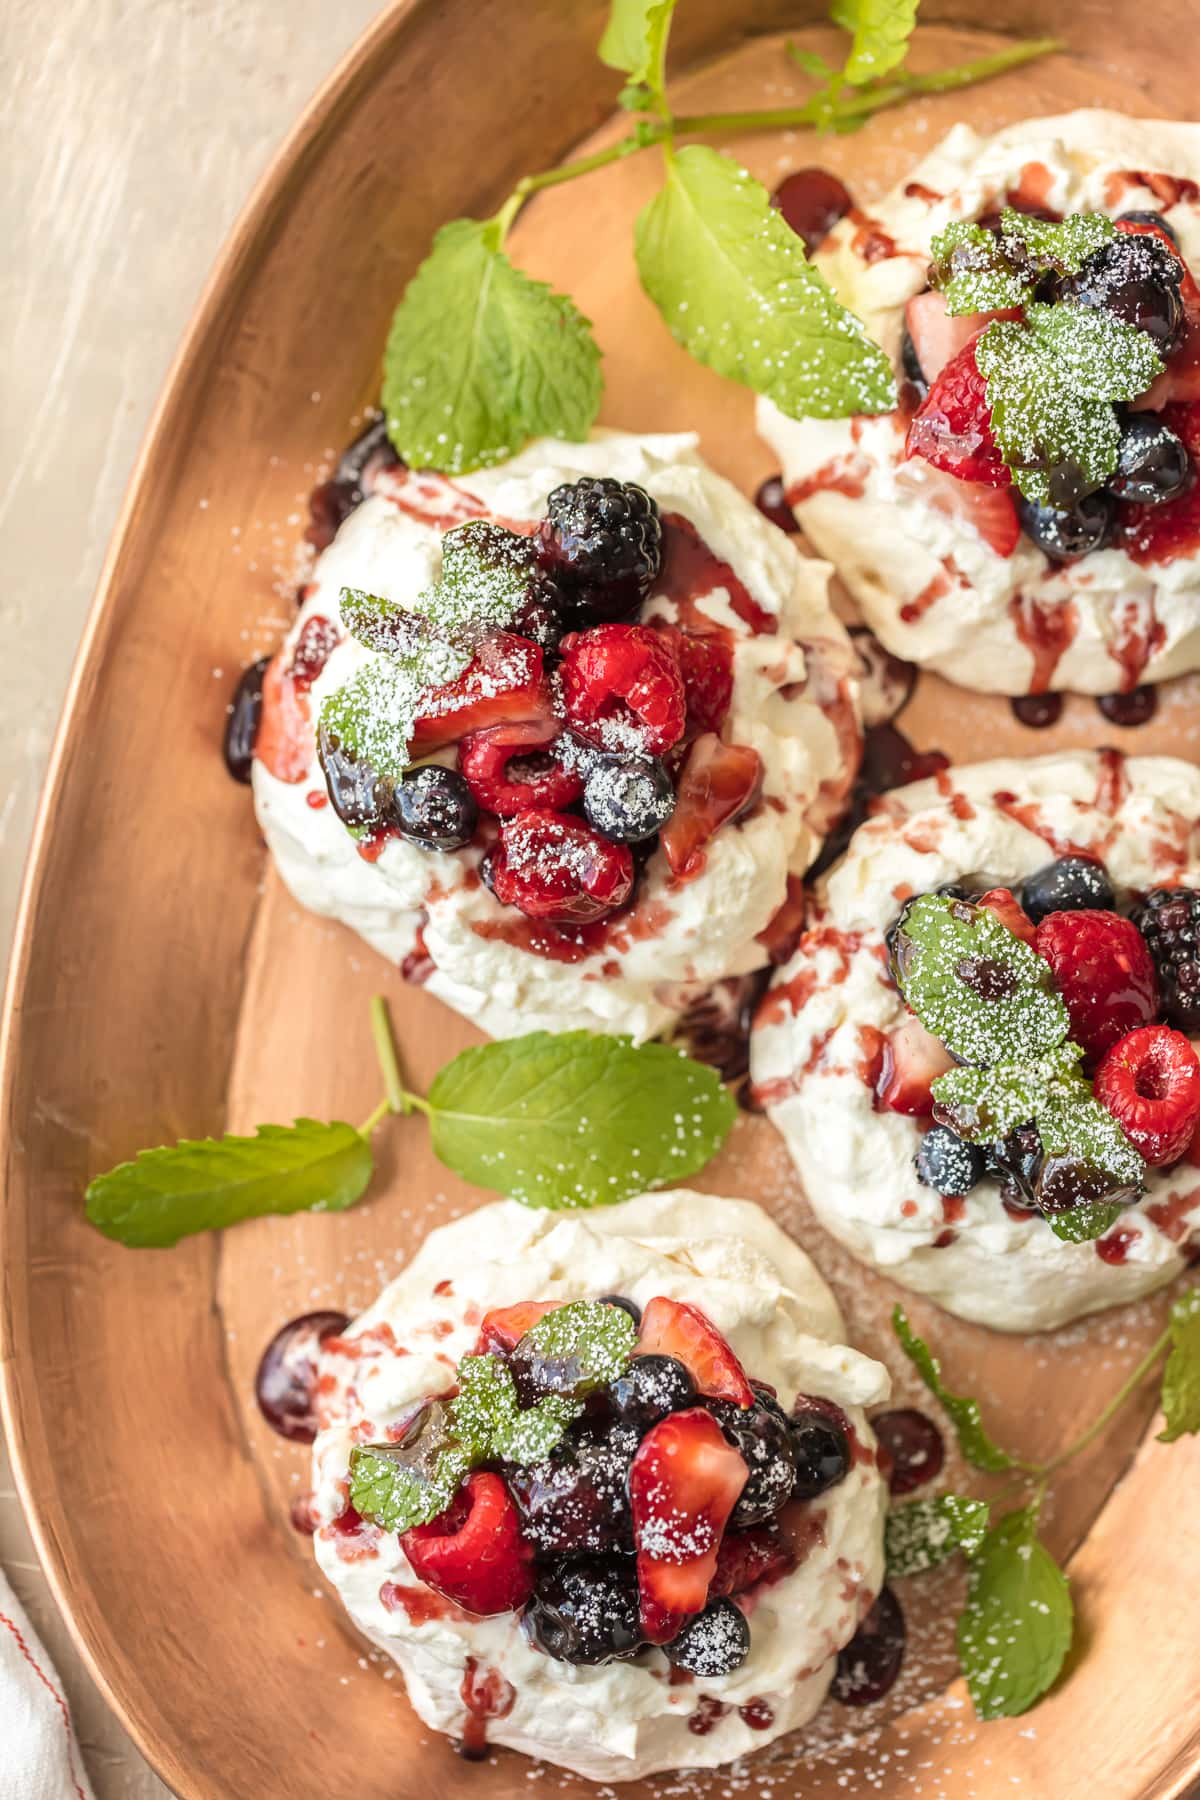 Mini Pavlovas - Meringue desserts topped with berries on a serving tray